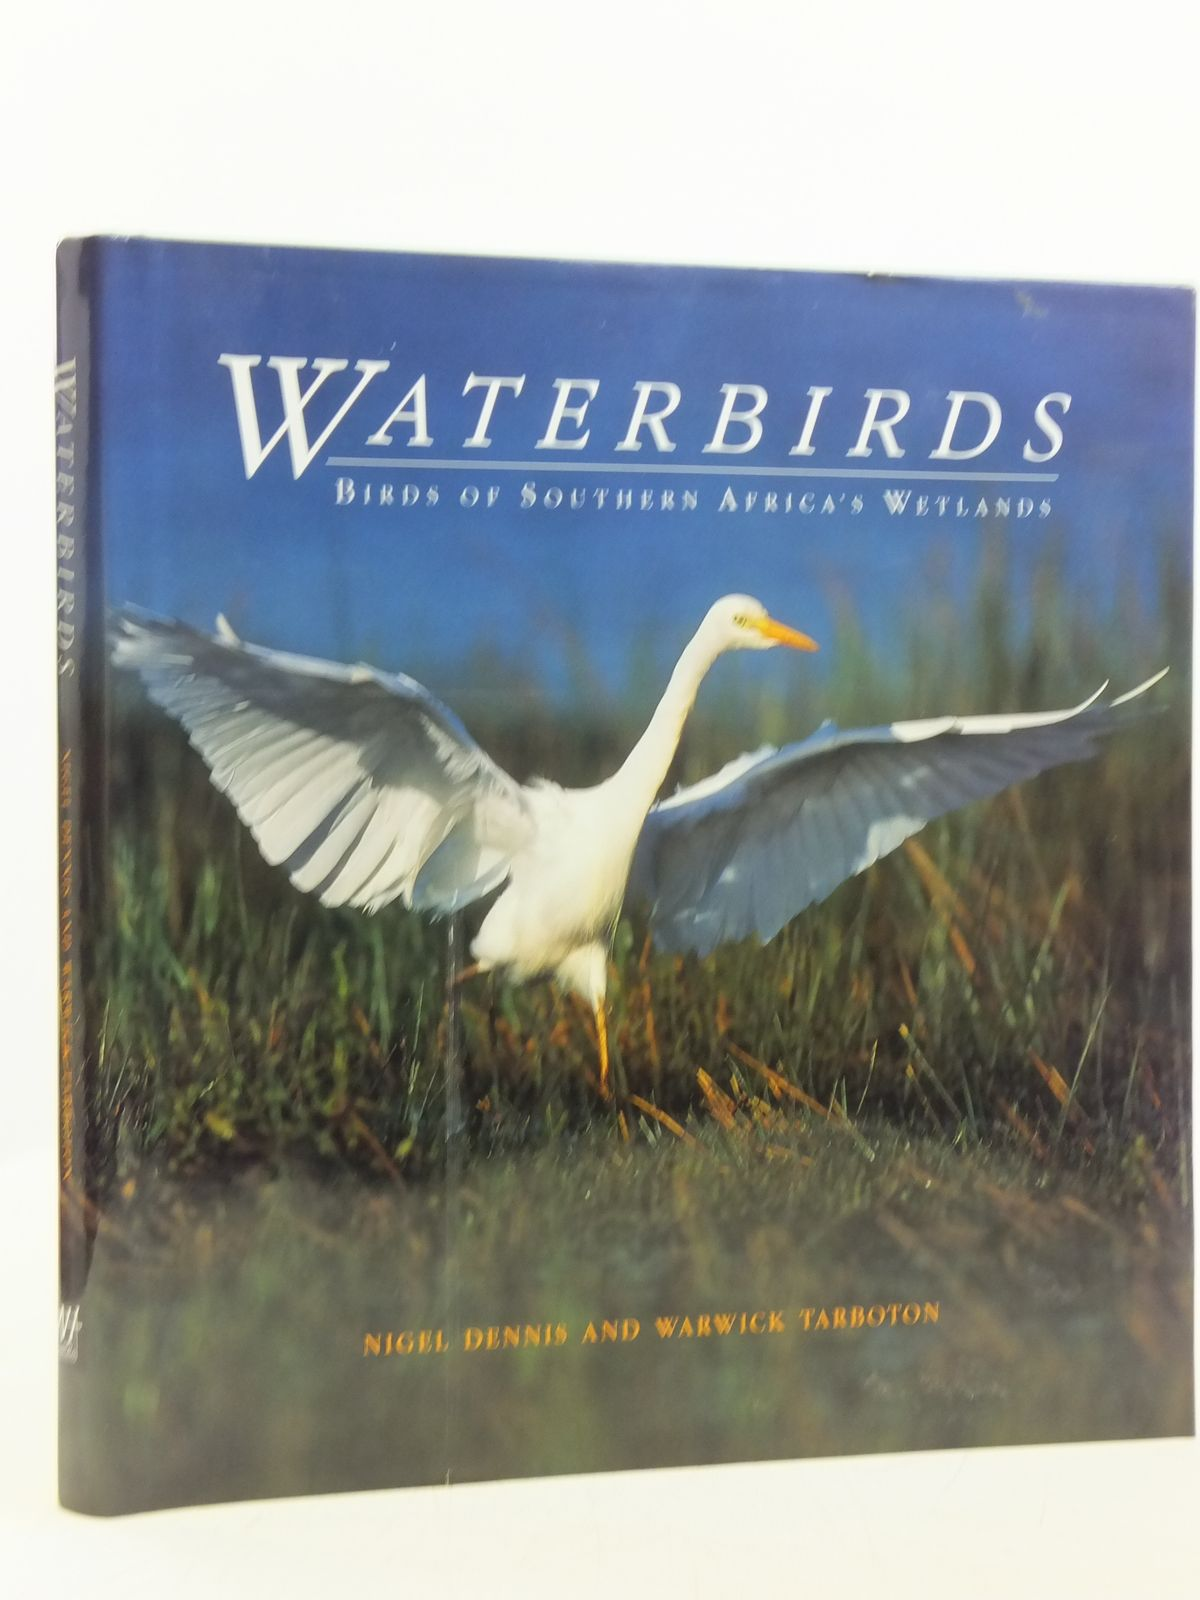 Photo of WATERBIRDS BIRDS OF SOUTHERN AFRICA'S WETLANDS